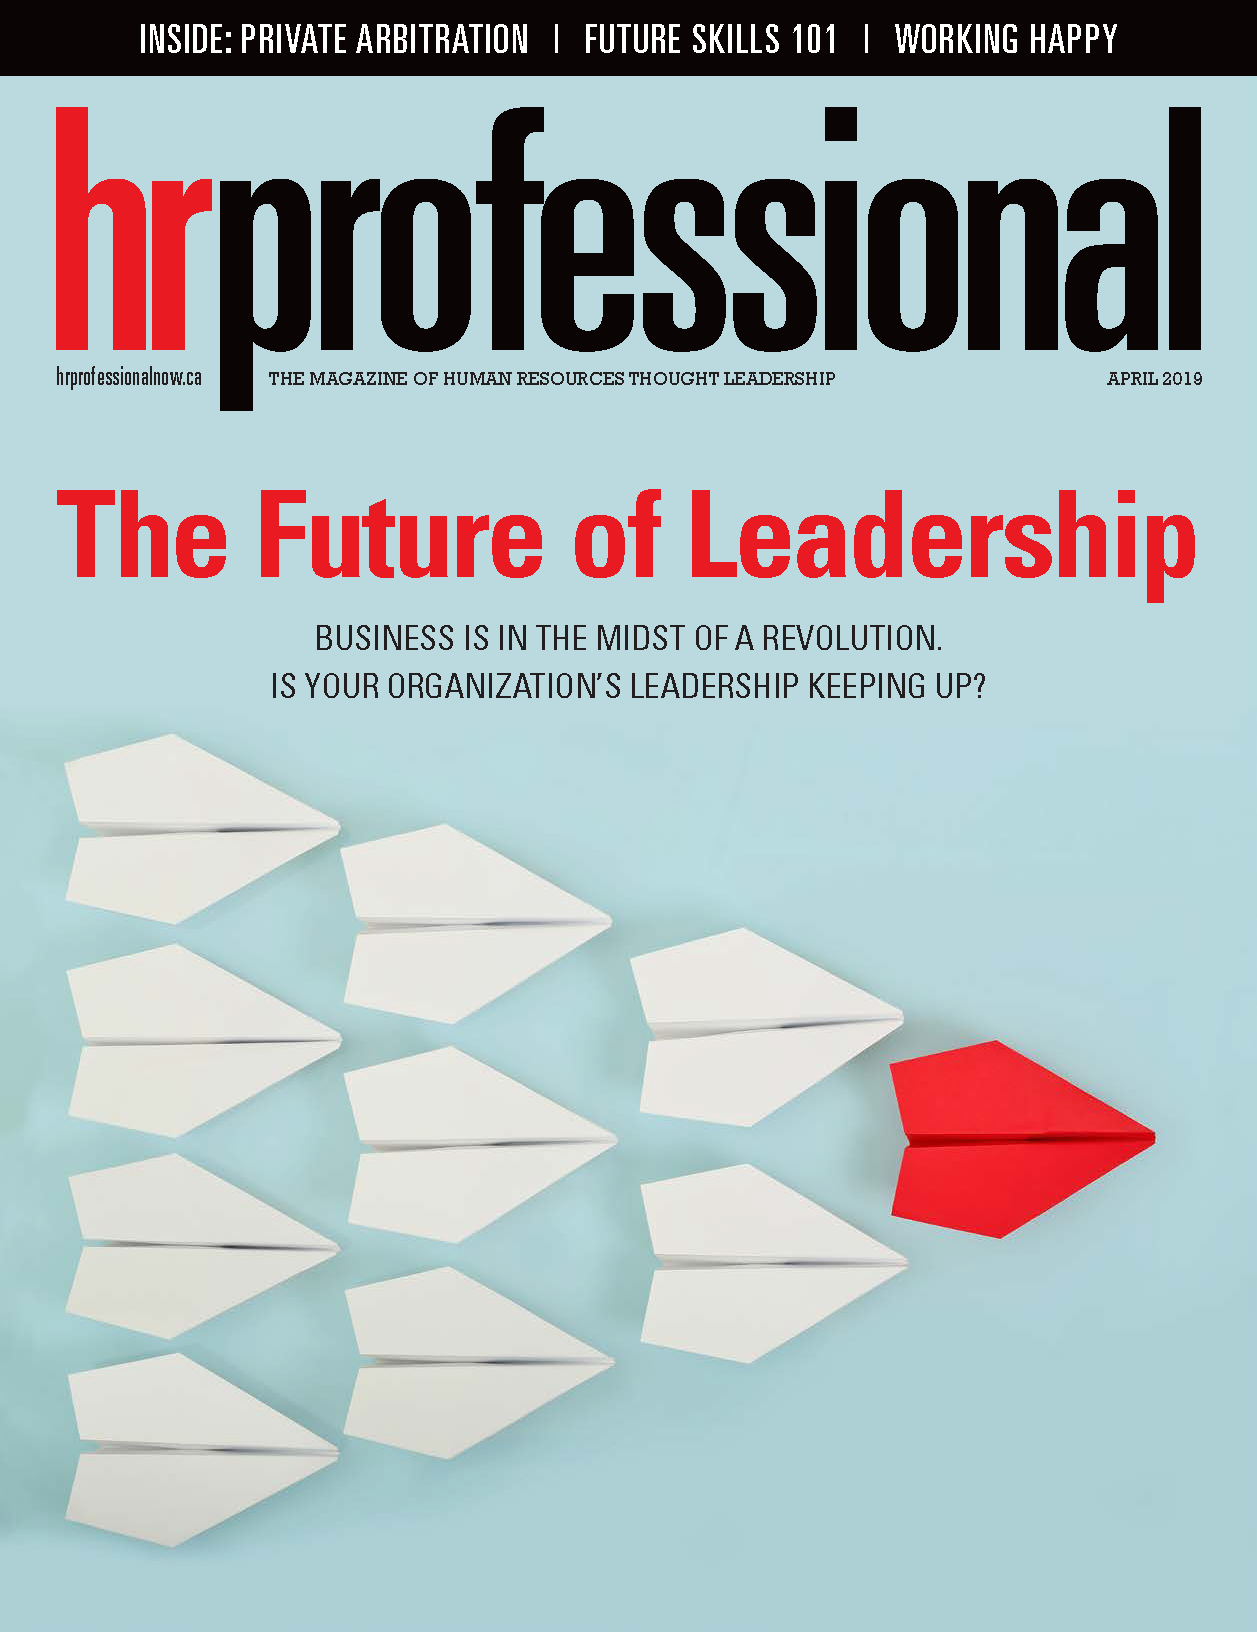 HR Professional April 2019 cover